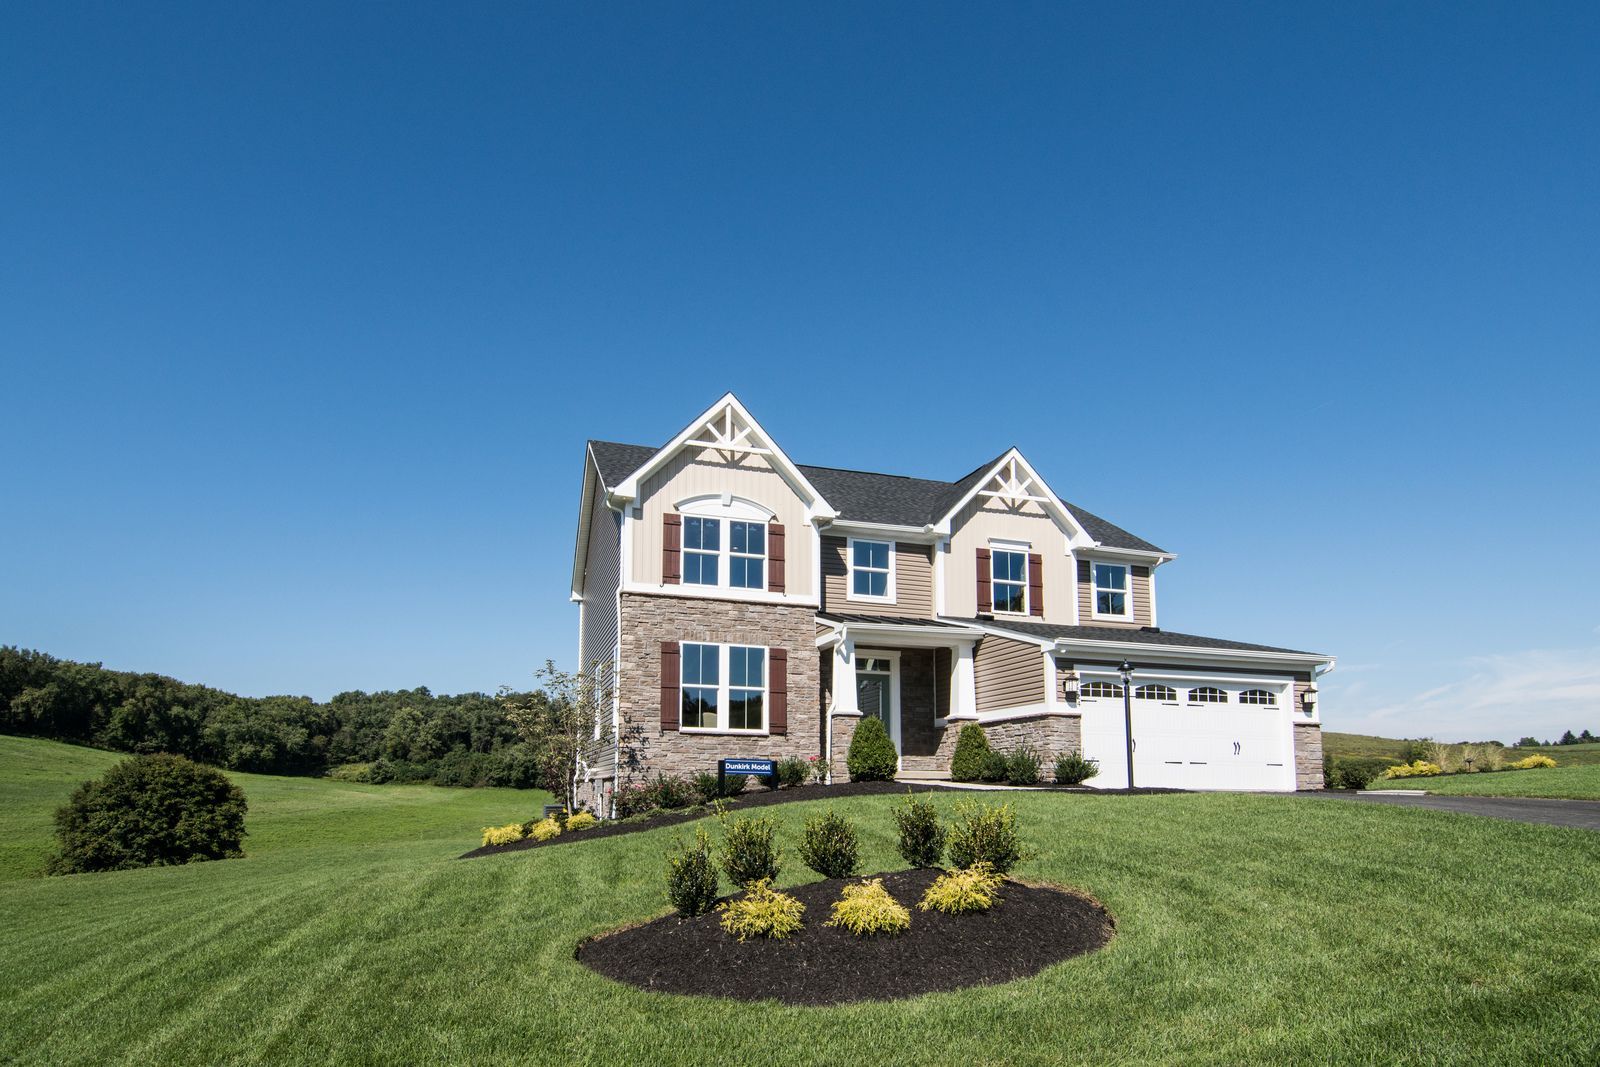 New homes for sale at windsor ridge in penfield ny within the your brand new single family home close to i 490 awaits at windsor ridge solutioingenieria Images